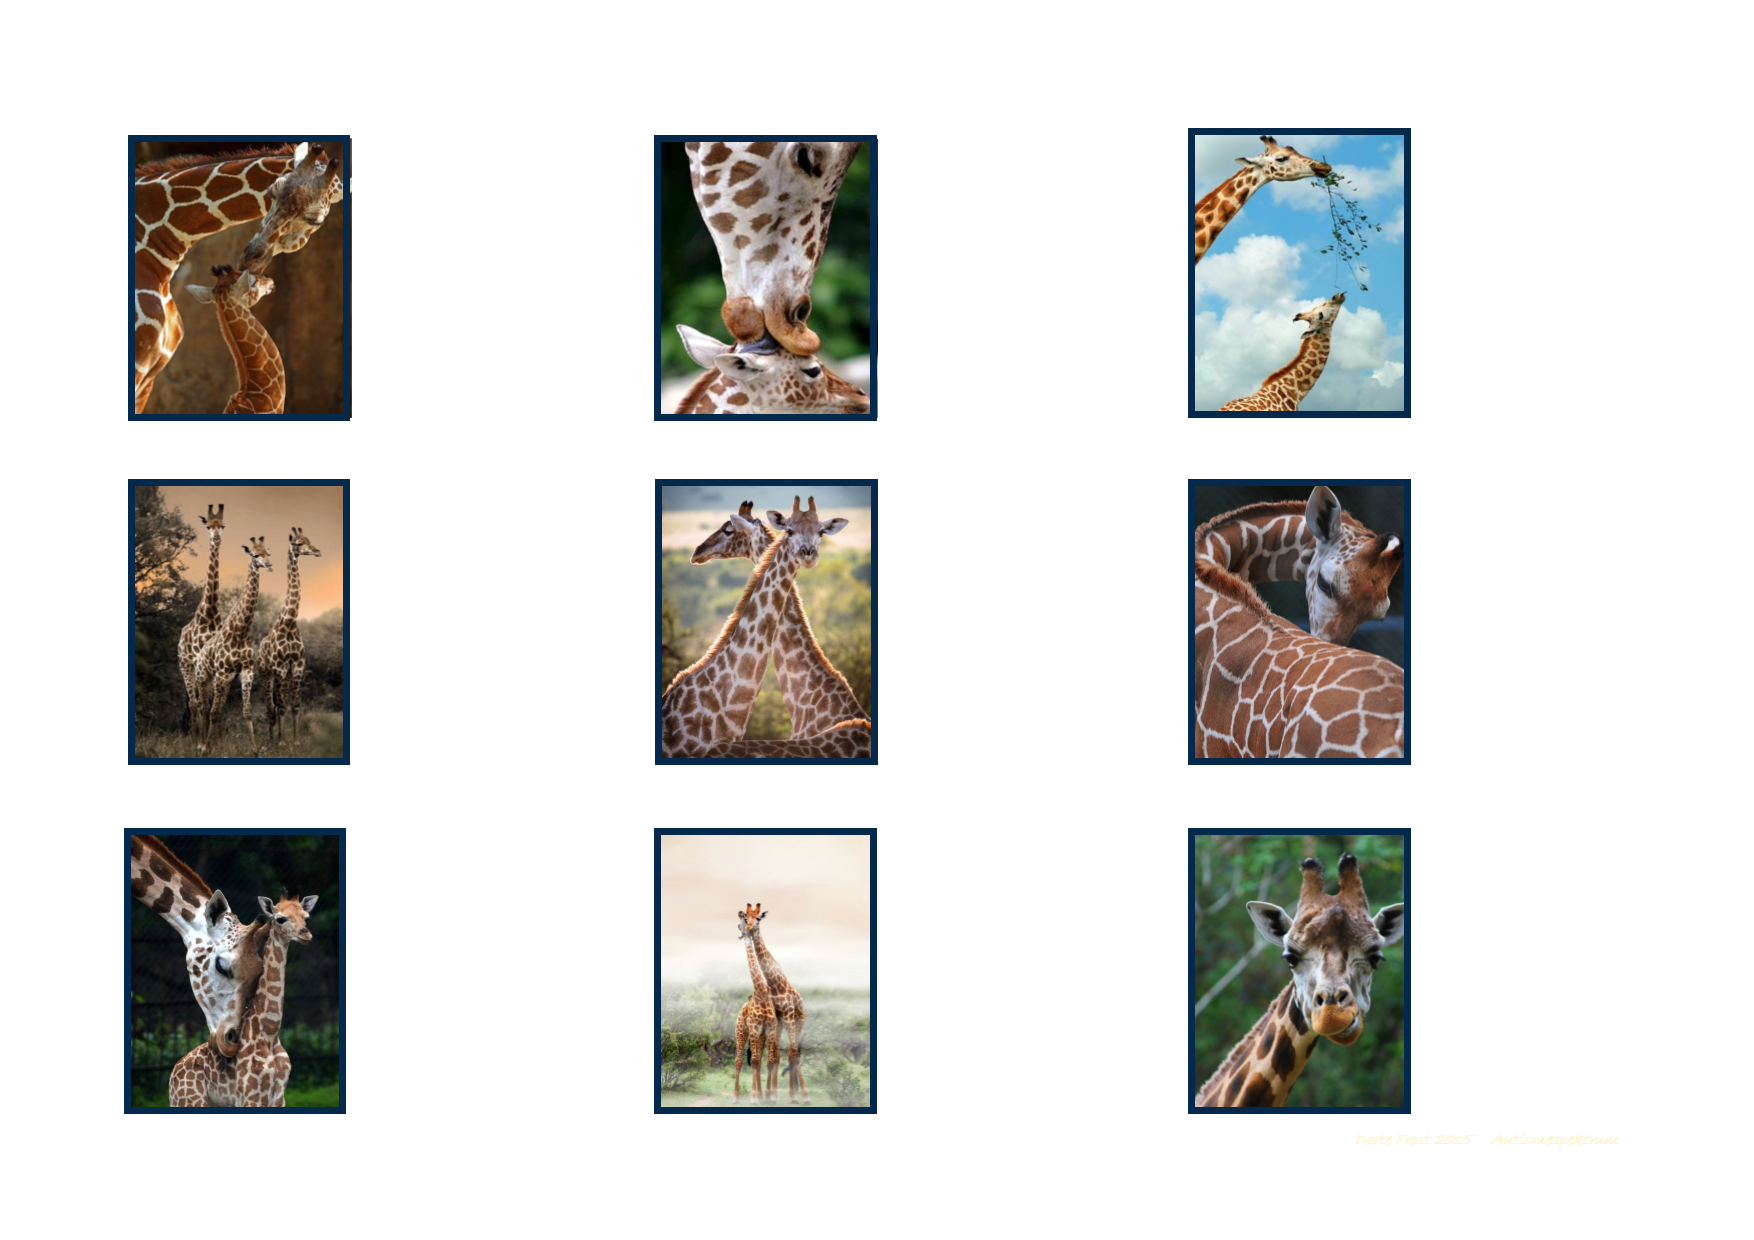 Tiles For The Giraffe Matching Game By Autismespektrum